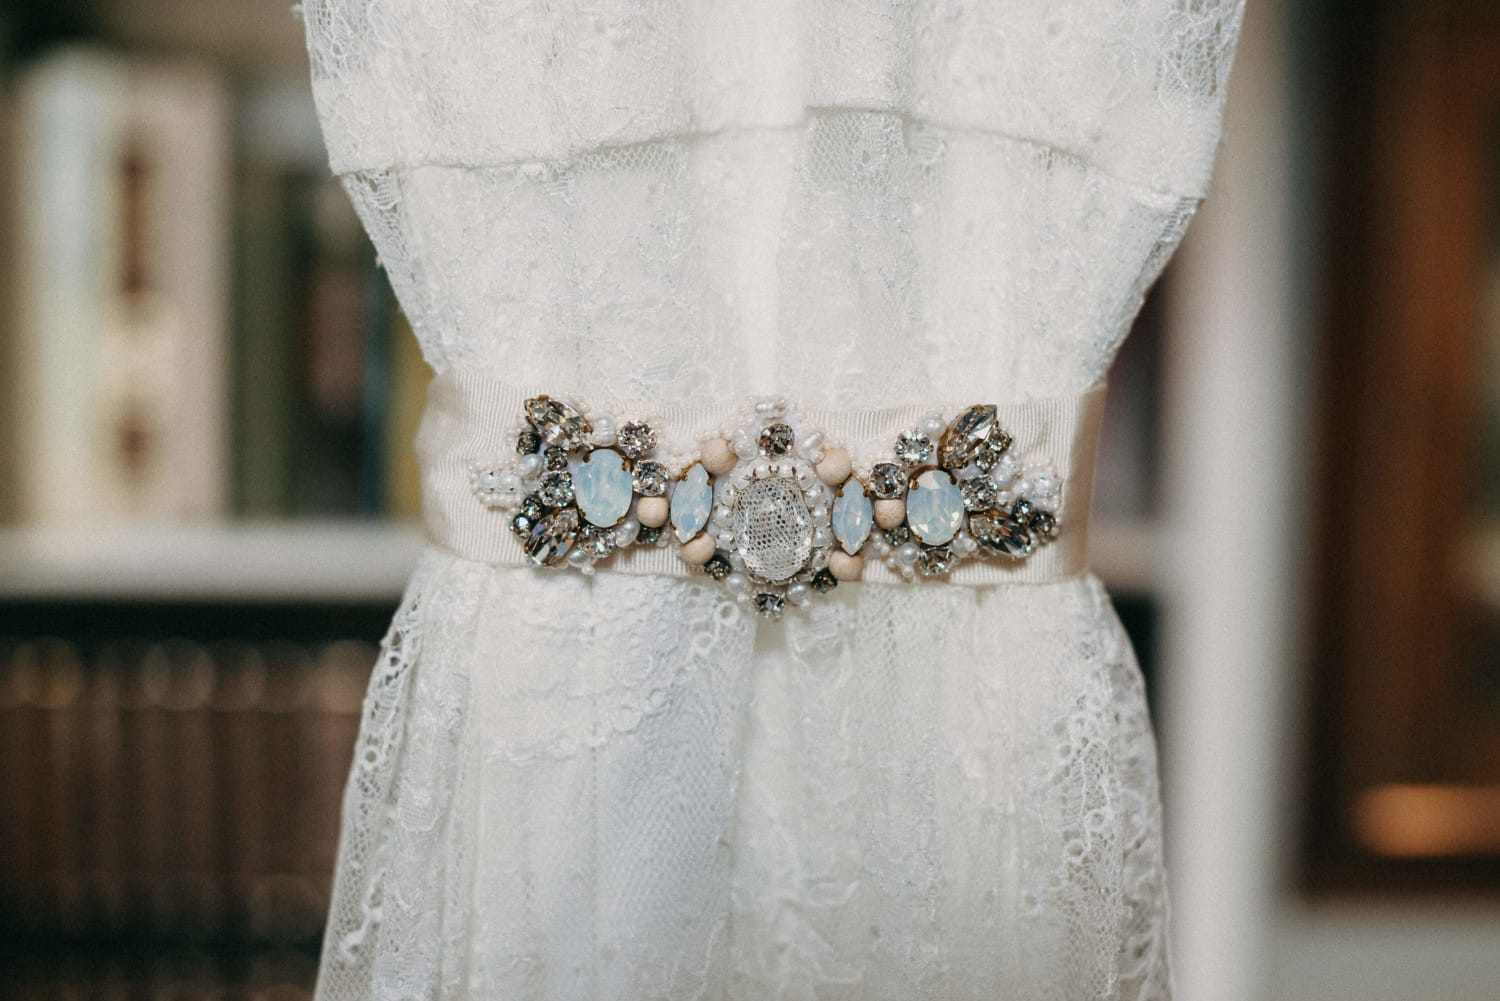 French Lace Wedding Gown: Vintage Inspired French Lace Katya Katya Shehurina Primose